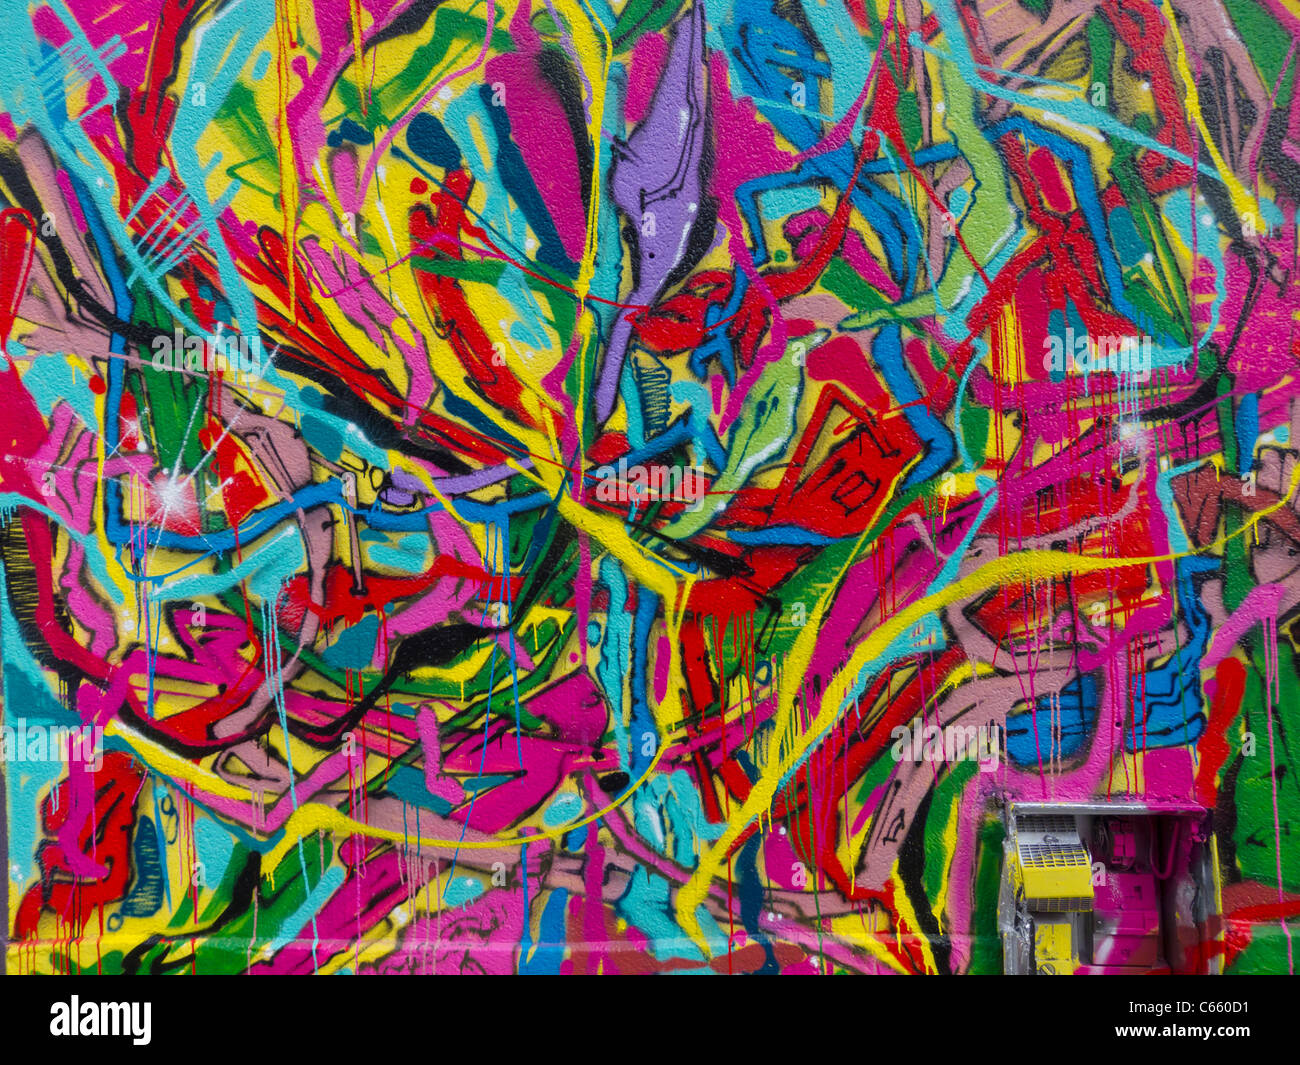 abstract mural painting images